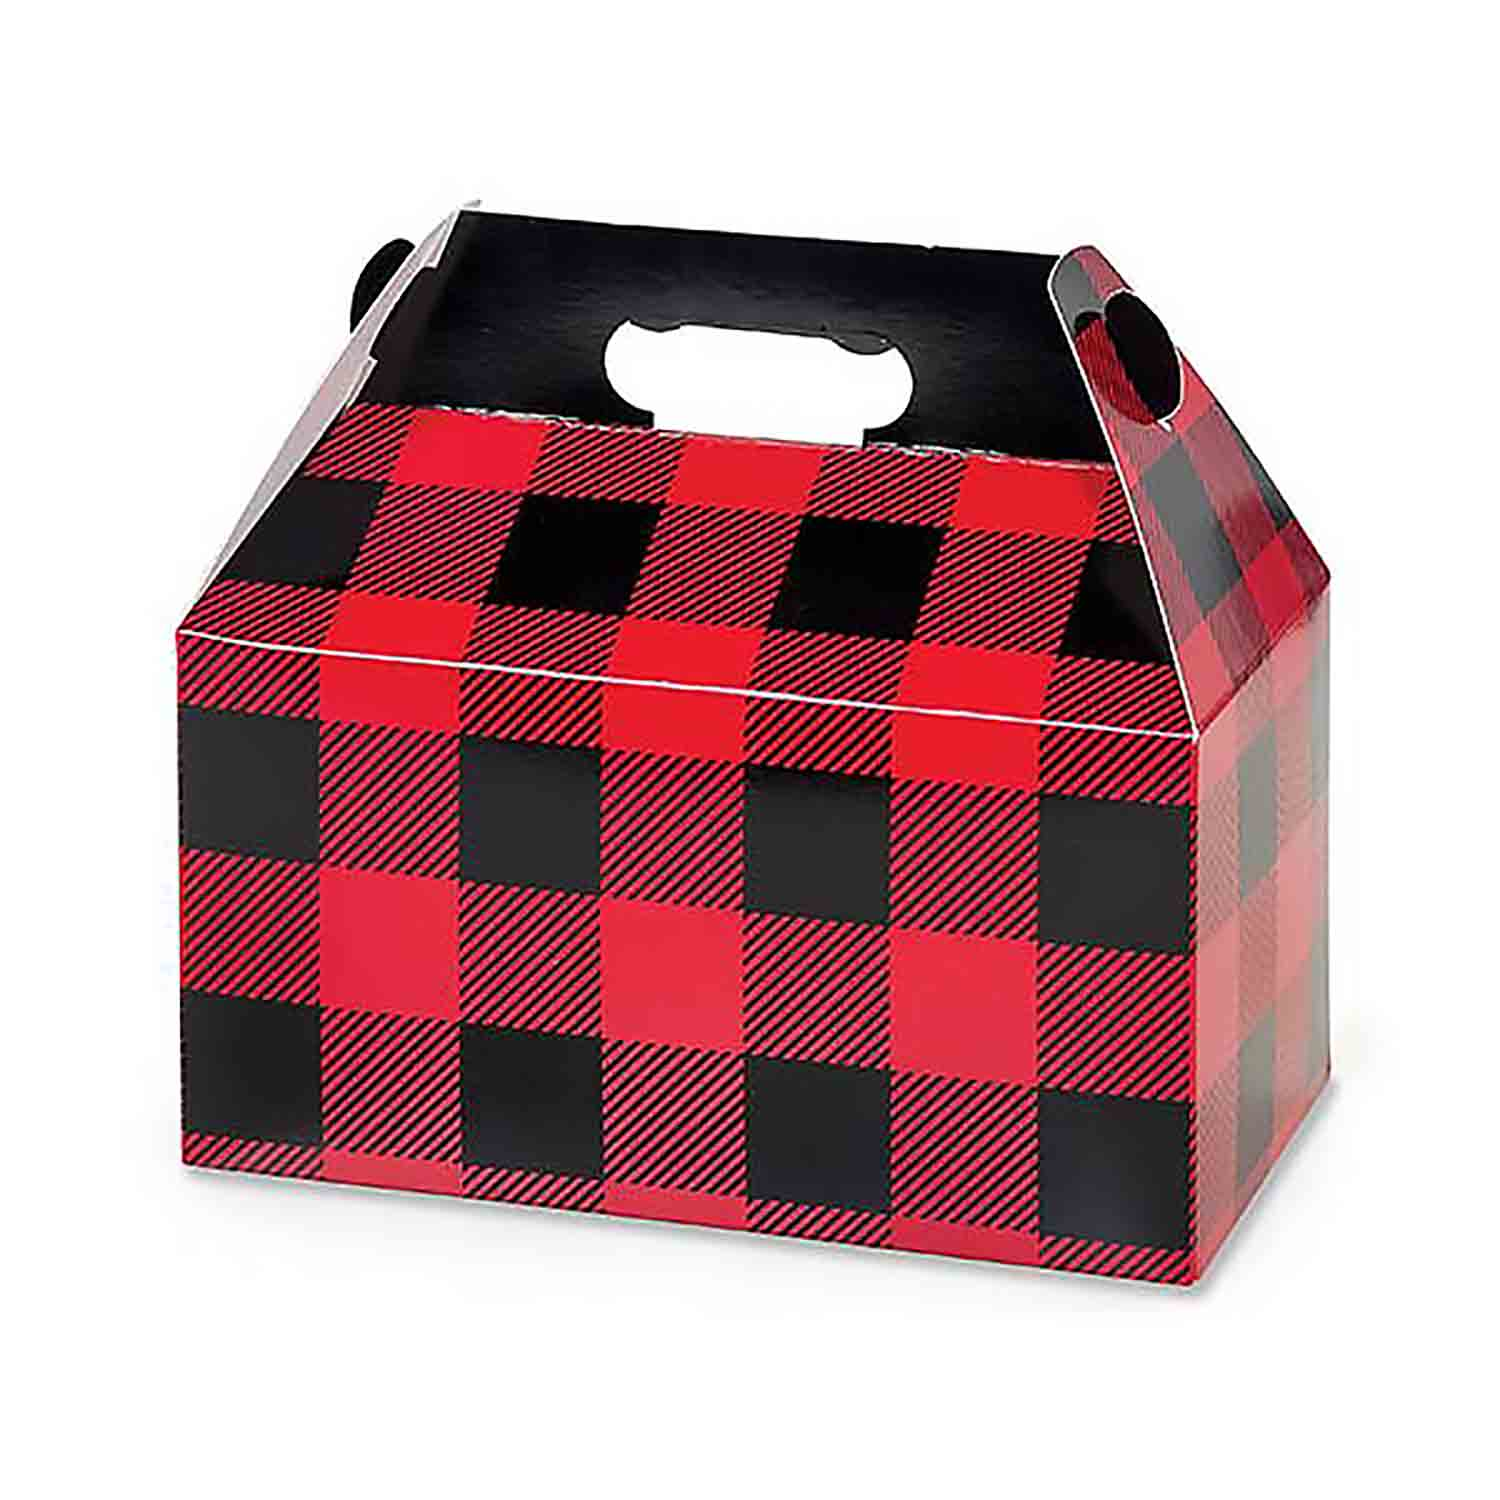 4 lb Buffalo Plaid Gable Box